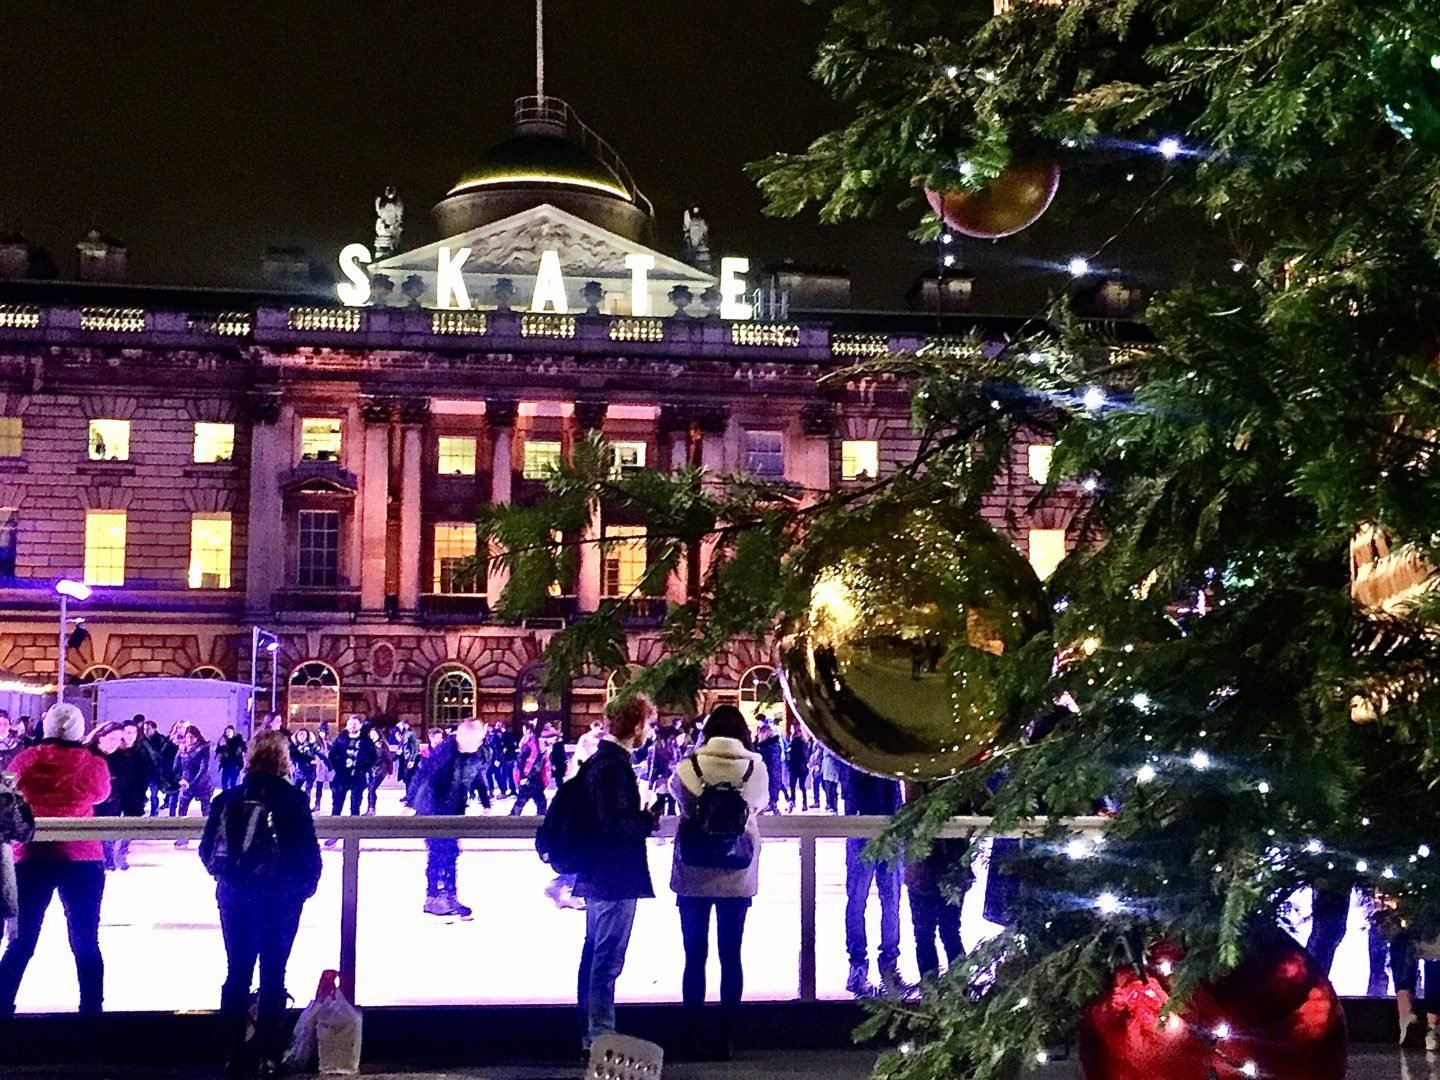 11 Best Ice rinks in London. Skate Ice rink at Somerset house